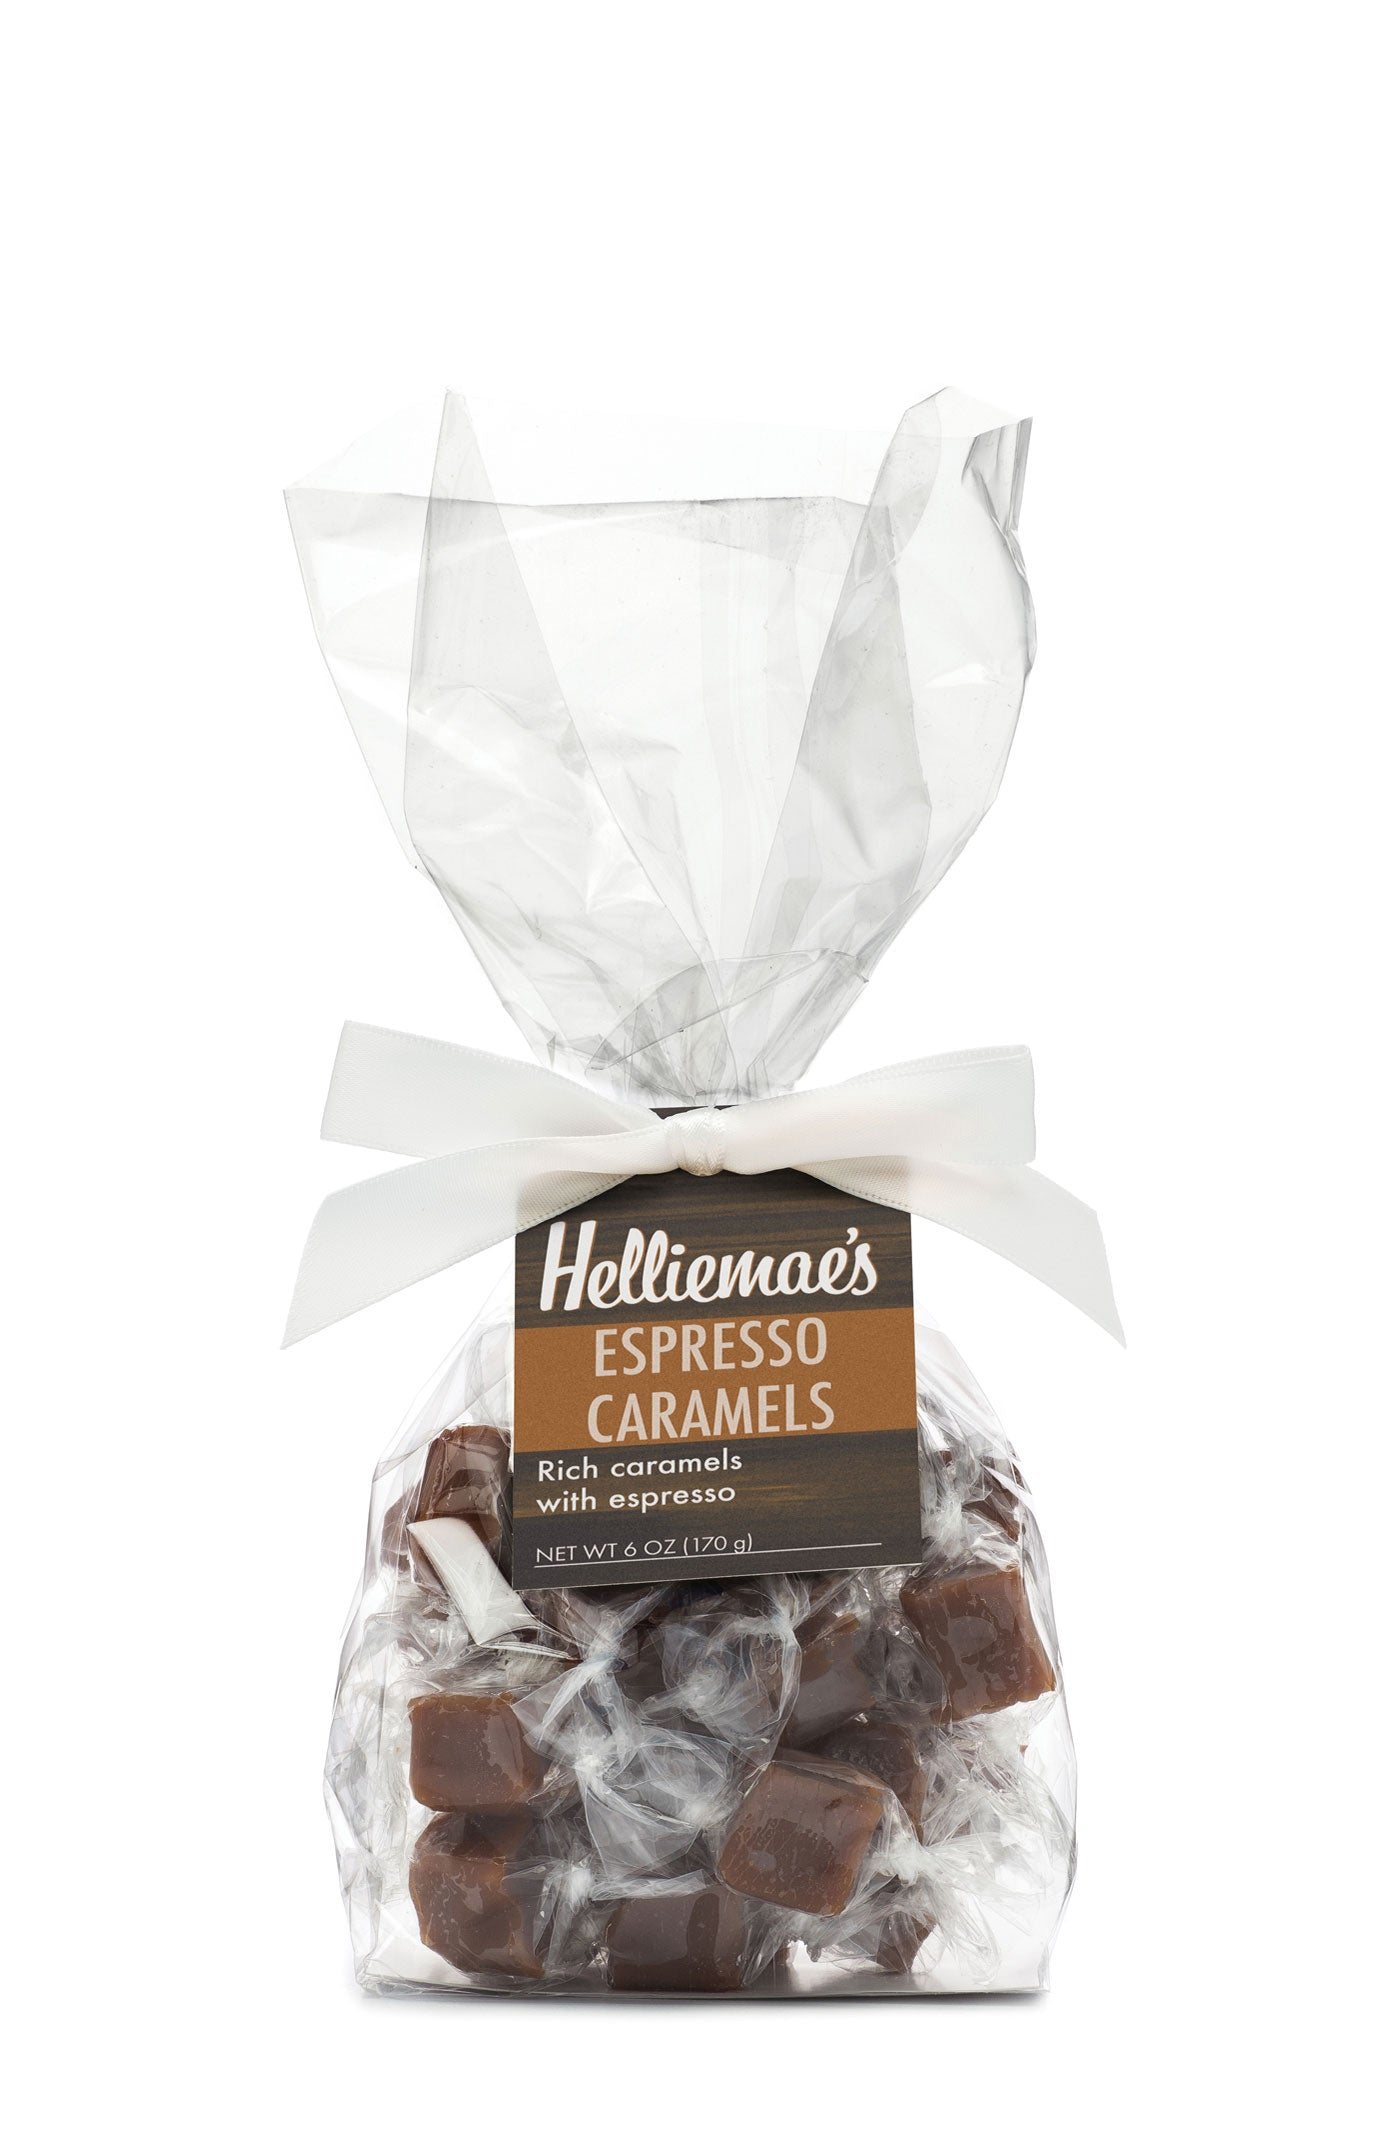 Helliemae's Espresso Caramels medium gift bag, clear cello bag with gathered top, fastened with white satin ribbon and colorful brown hangtag, with effect of milk paint on a barn wall.